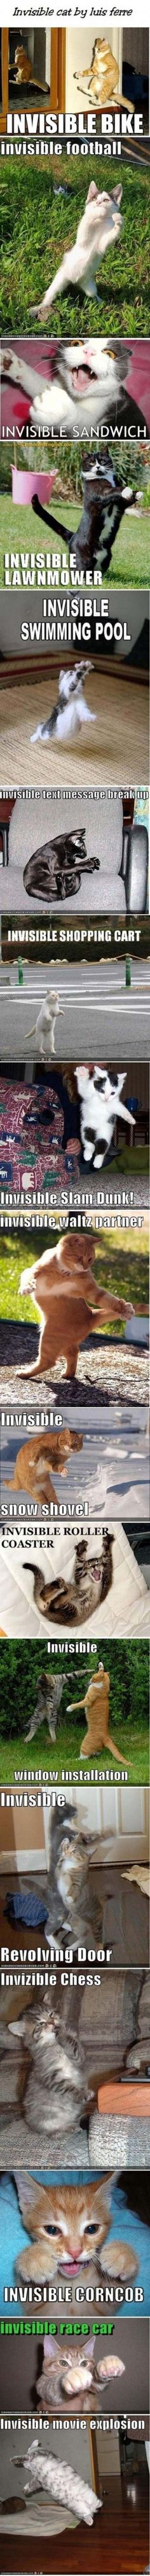 funny animals pictures 191 (54 pict) | Funny pictures